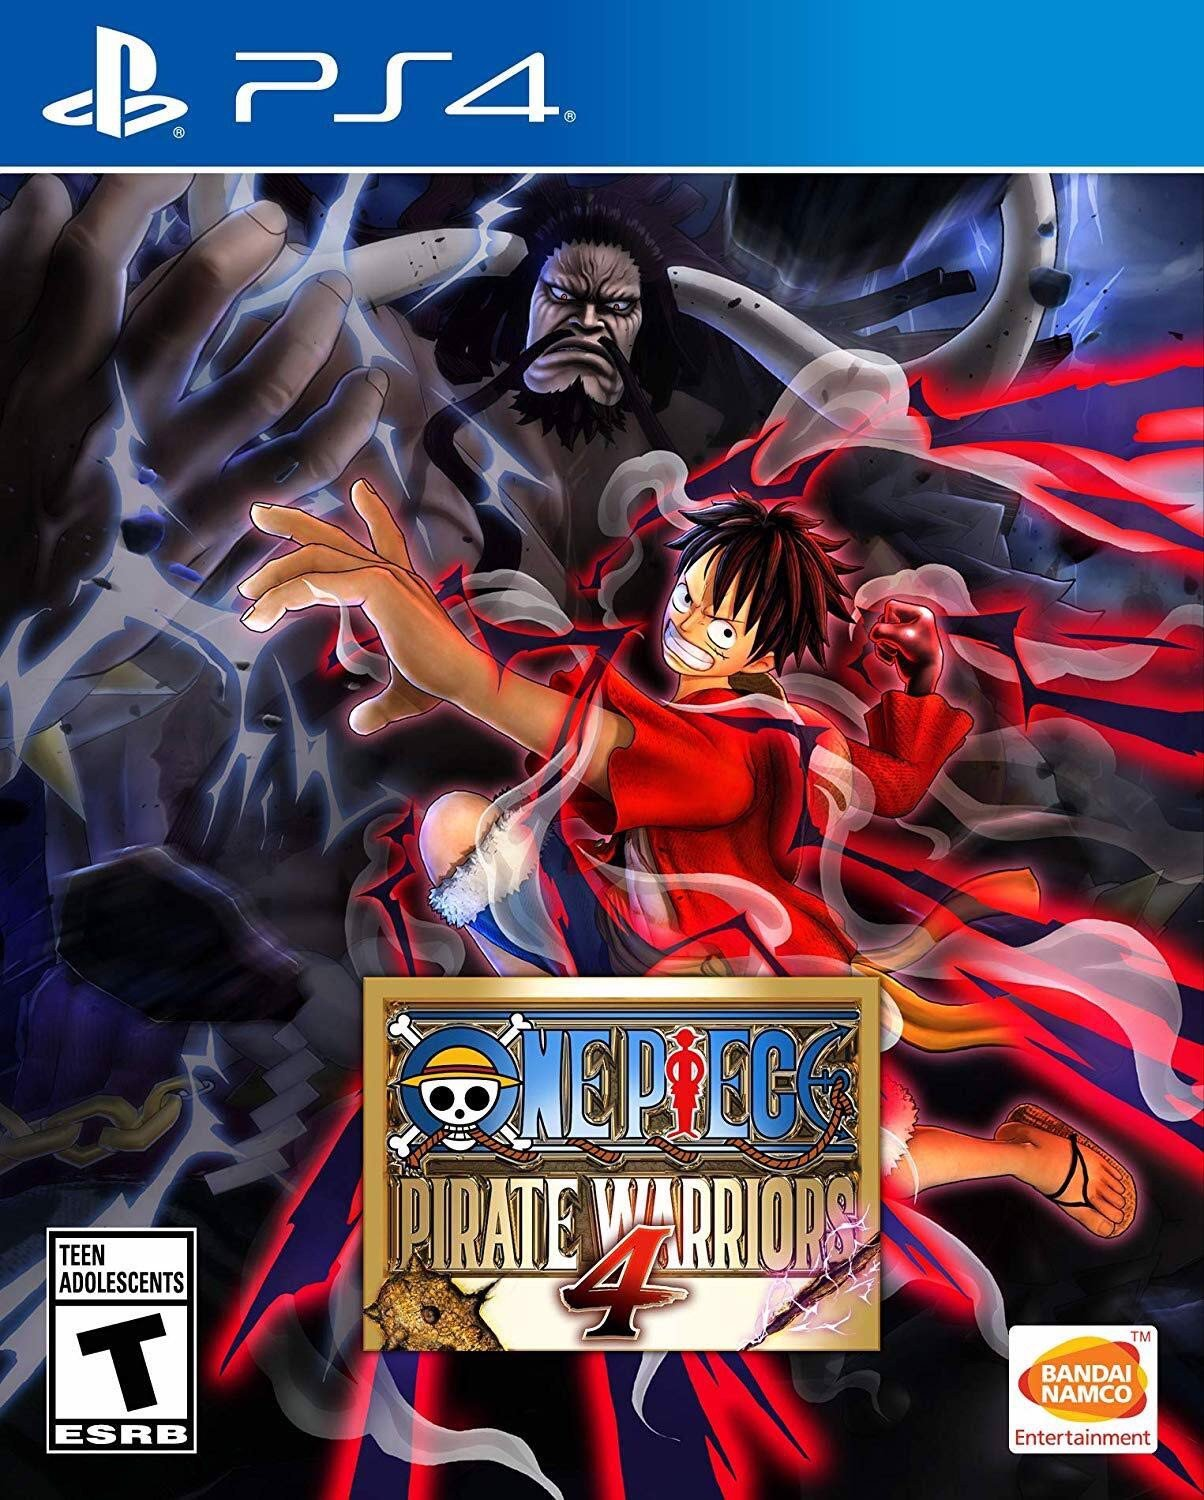 794 - One Piece Pirate Warrriors 4